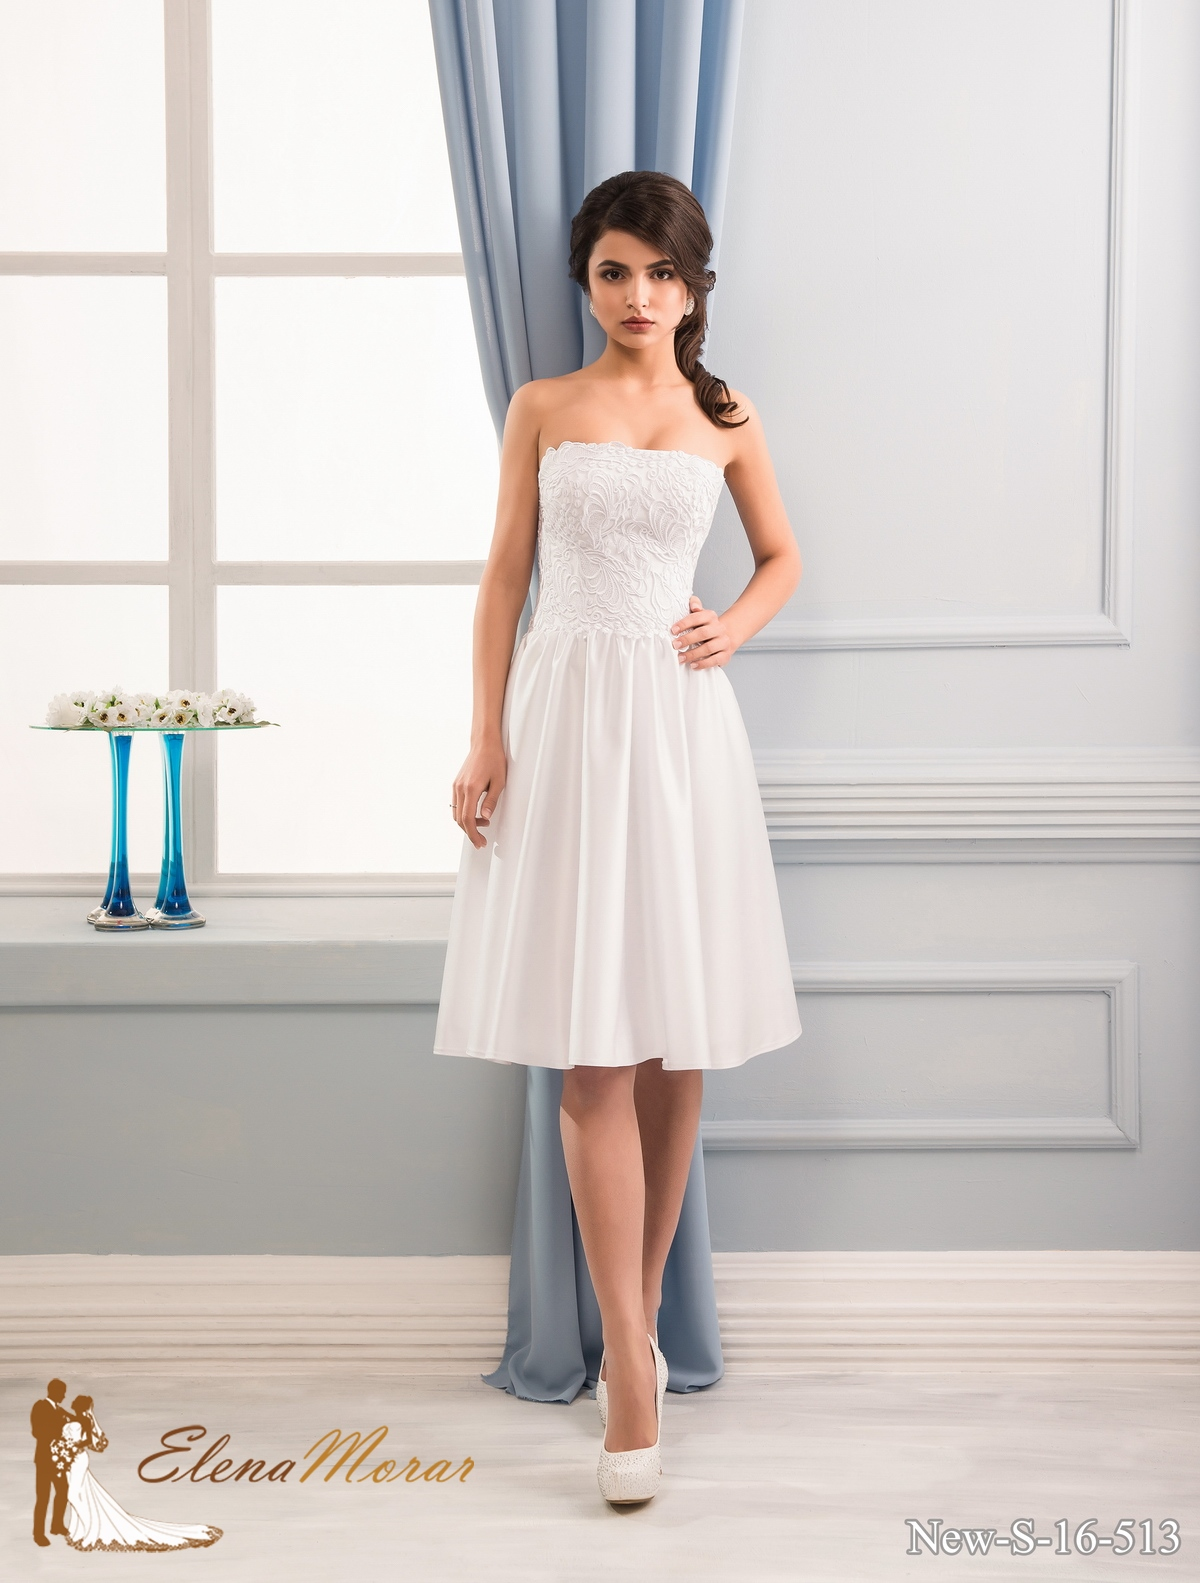 Producing of new wedding collection by Elena Morar